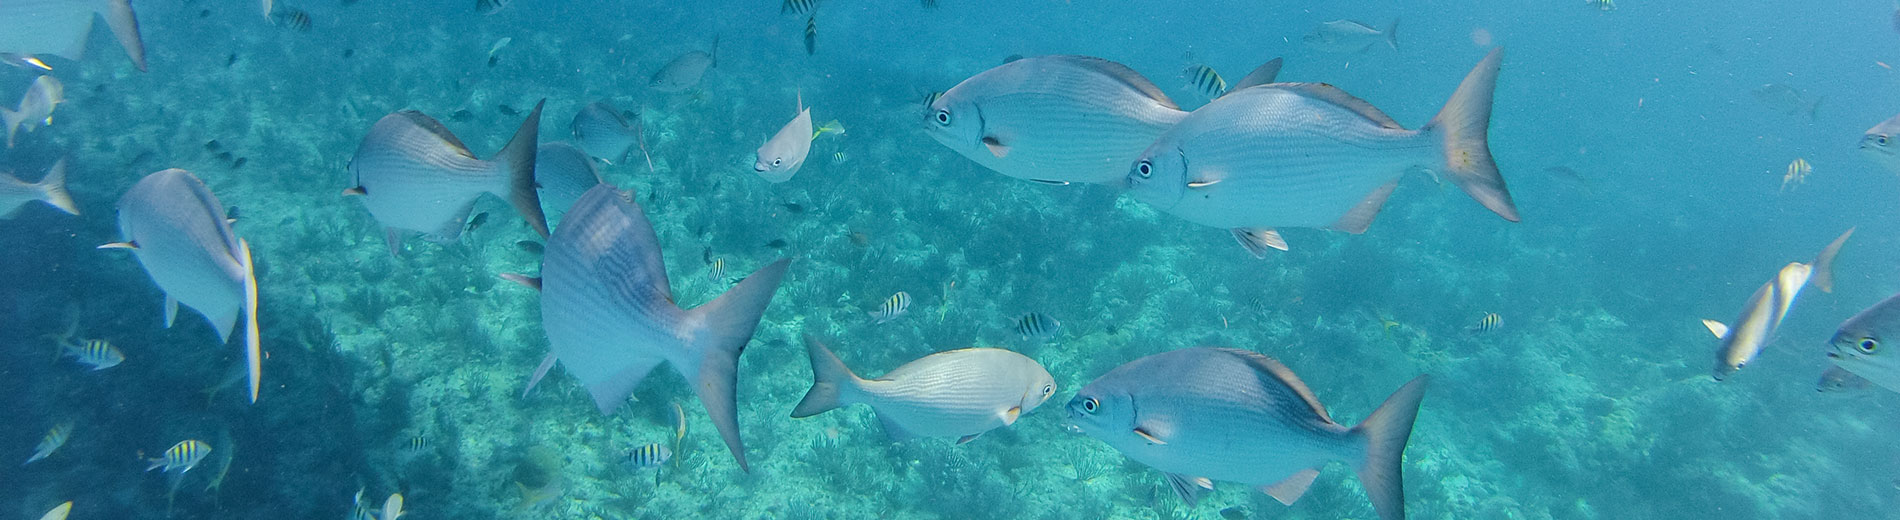 Photo shows fish in water